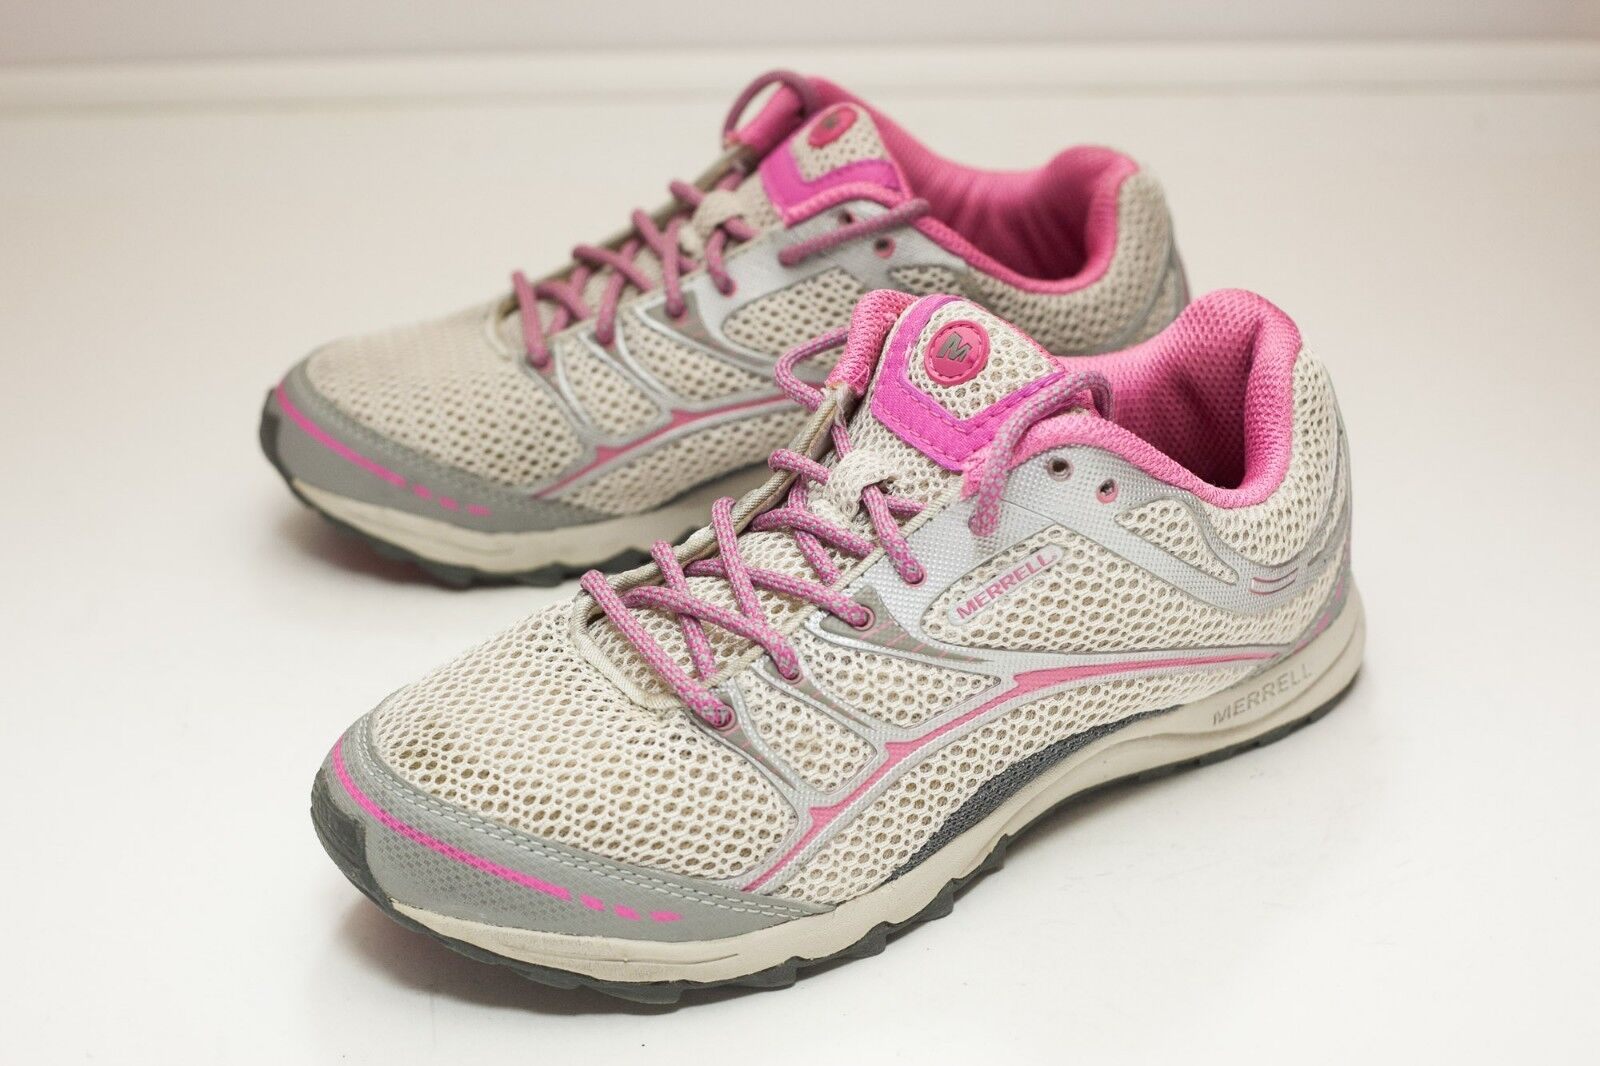 Mr/Ms Merrell 7 Gray Pink Trainers Women's Special purchase The highest quality material Popular tide shoes